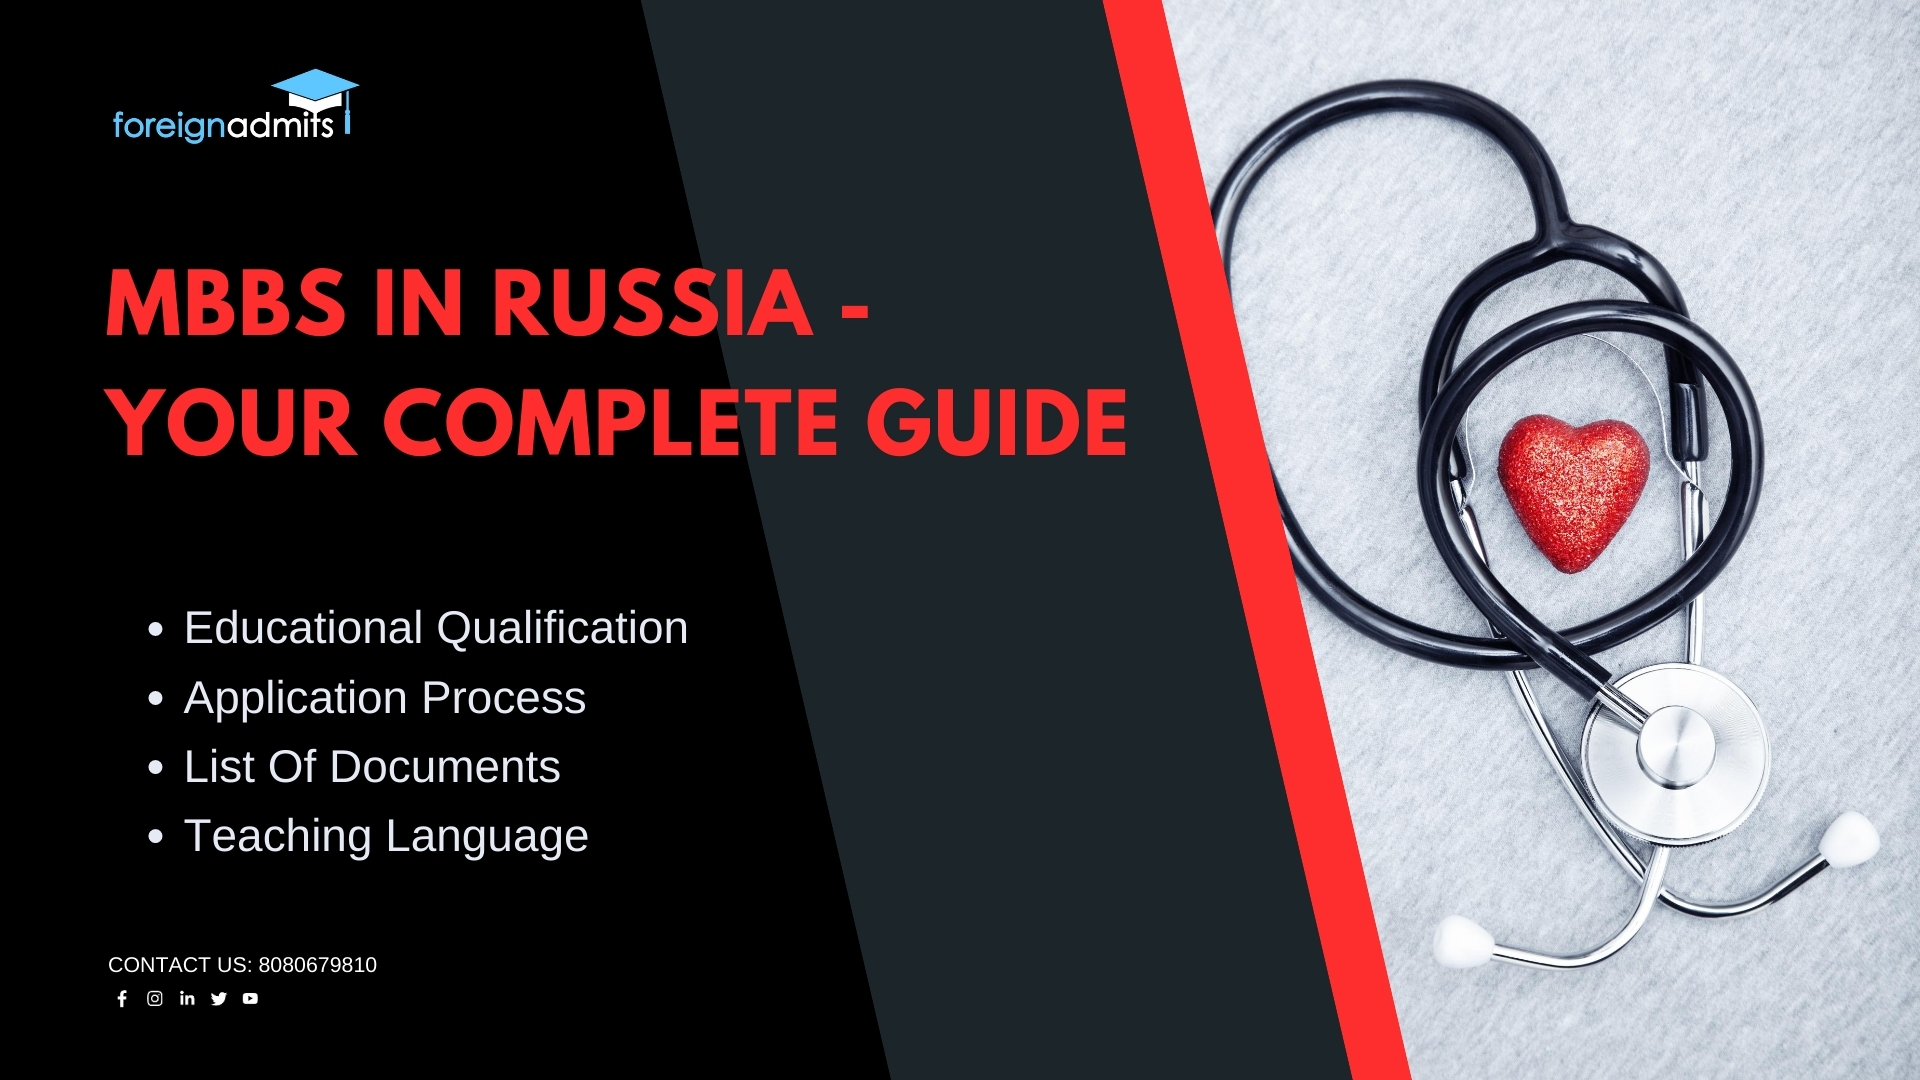 MBBS in Russia - Your complete guide